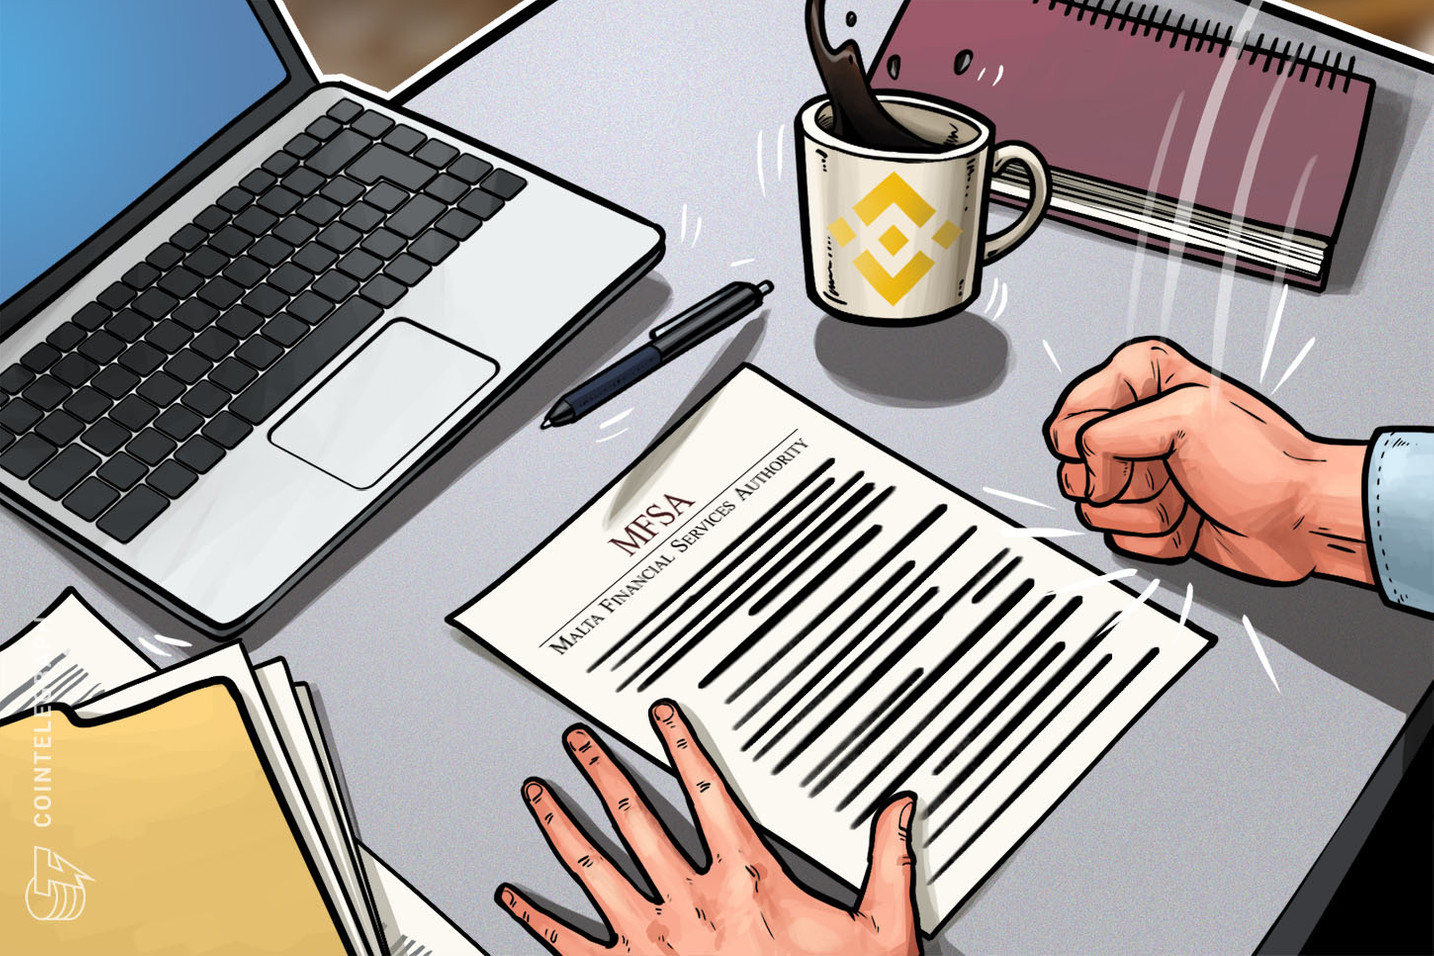 Binance Is Not Authorized to Operate in Malta, Financial Regulator Says